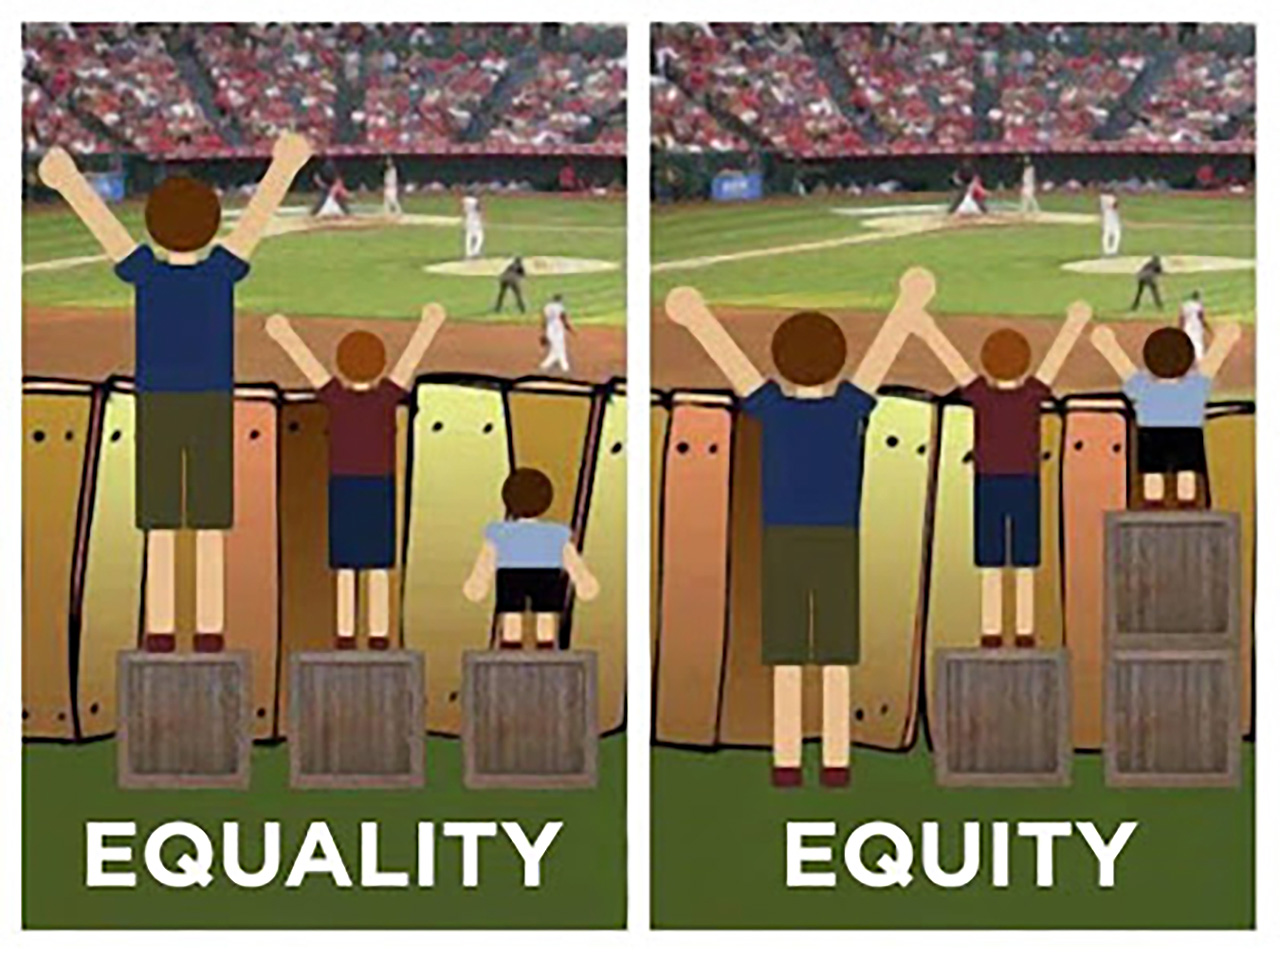 Equality vs. Equity image of children standing on boxes to watch a baseball game..